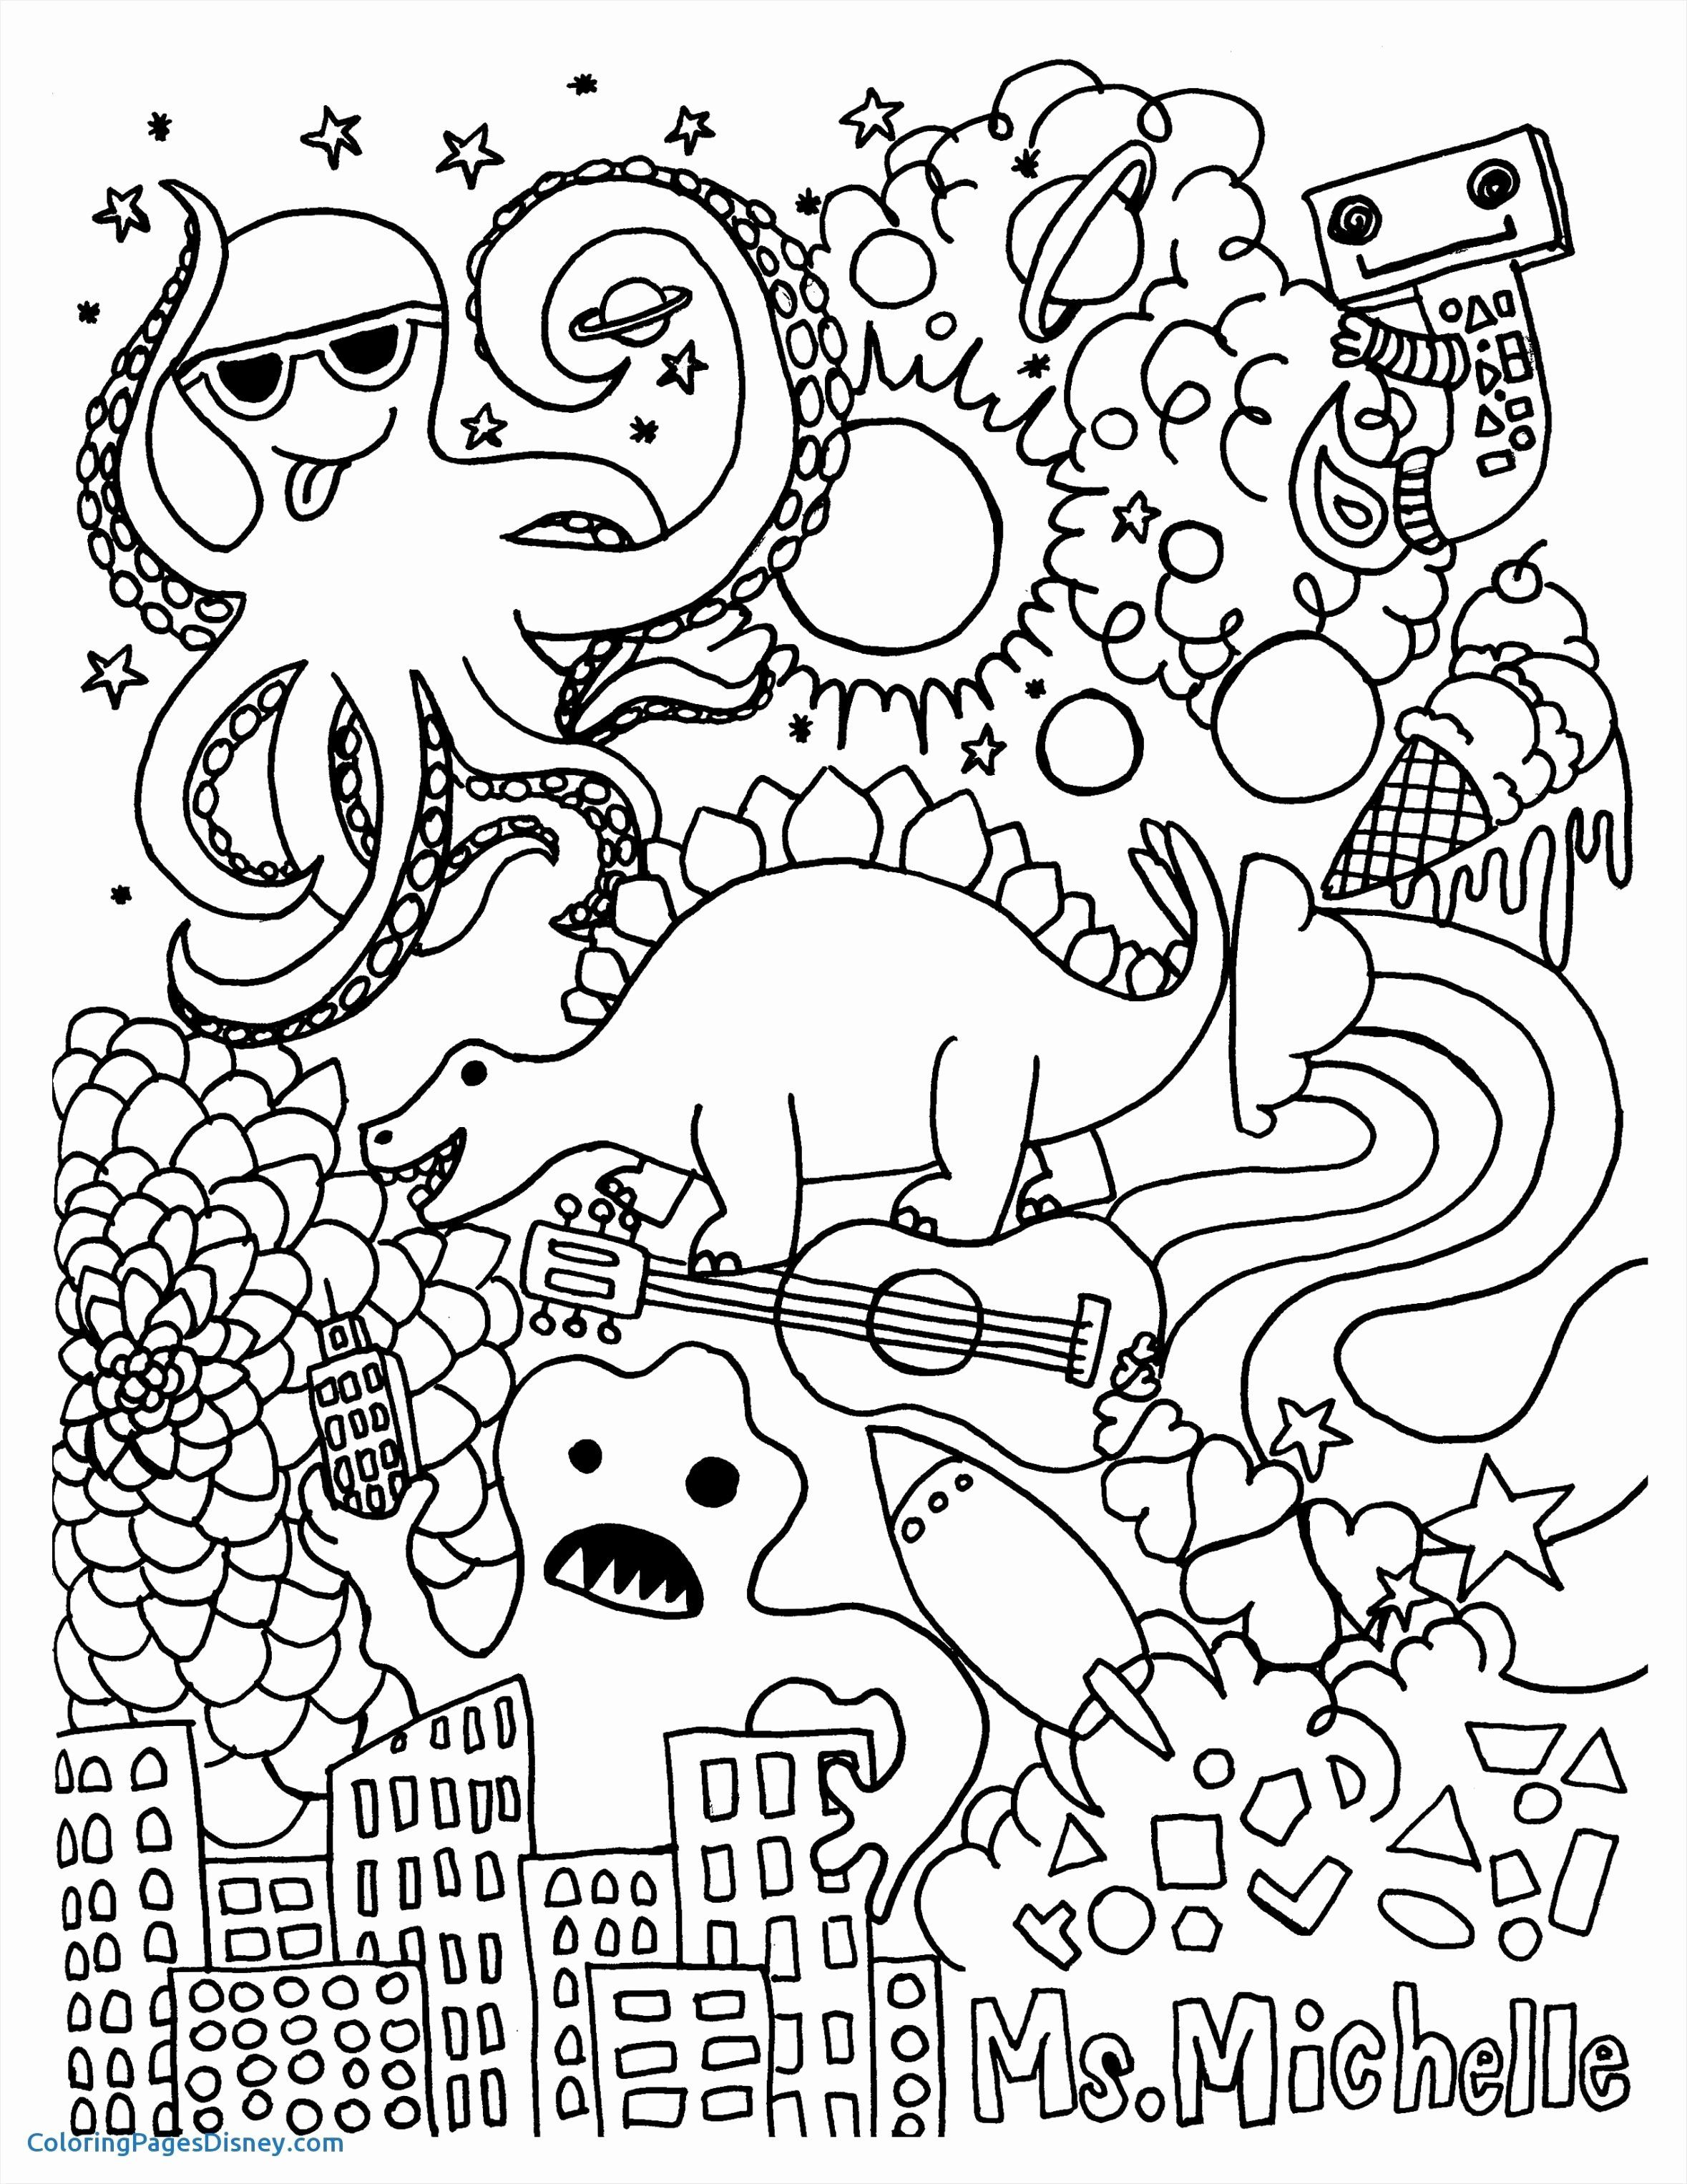 Free Patriotic Coloring Pages Printables Unique Coloring Books Native American Coloring Pages Fall Coloring Pages Coloring Books Disney Princess Coloring Pages